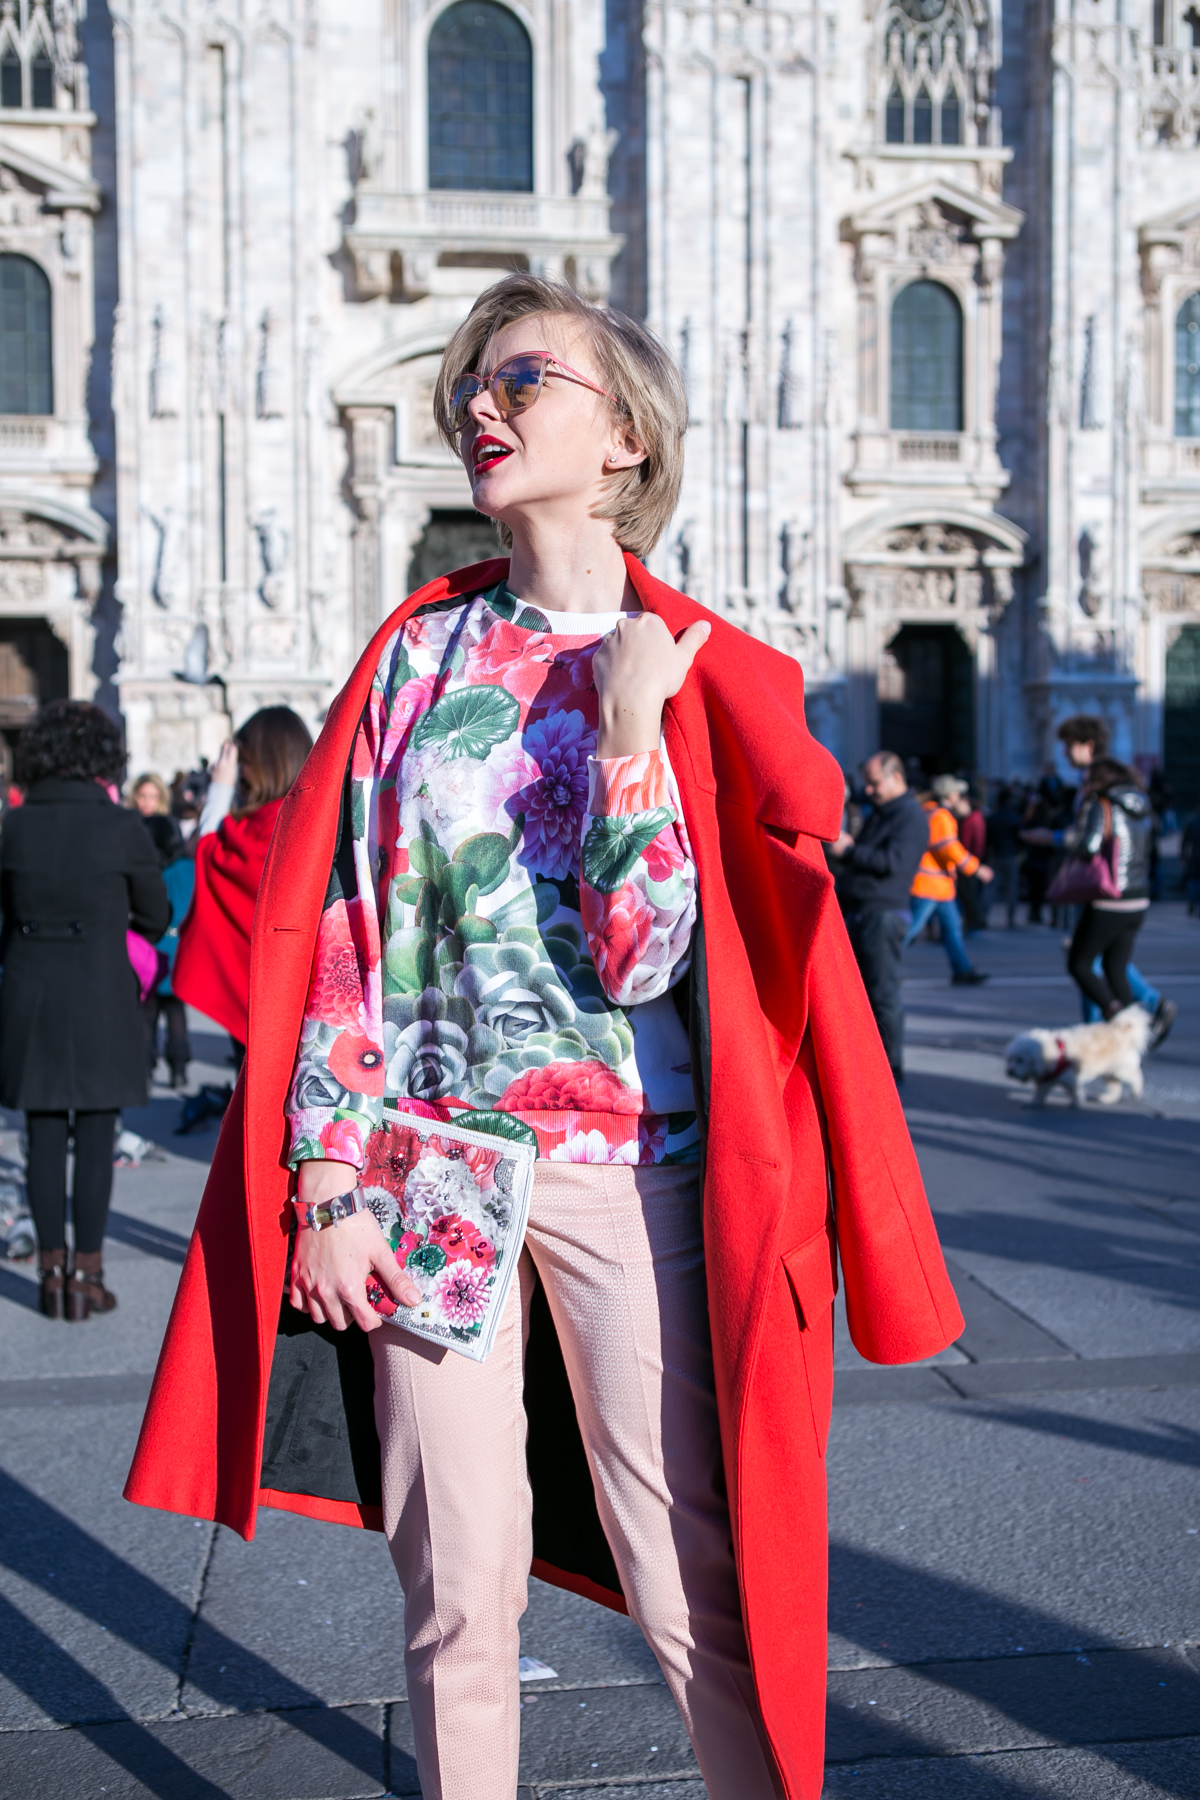 thecablook darya kamalova russian italian blogger street style short blonde hair mfw milan fashion week duomo safilo simone falcetta tods presentation uma wang fashion show long red coat-79